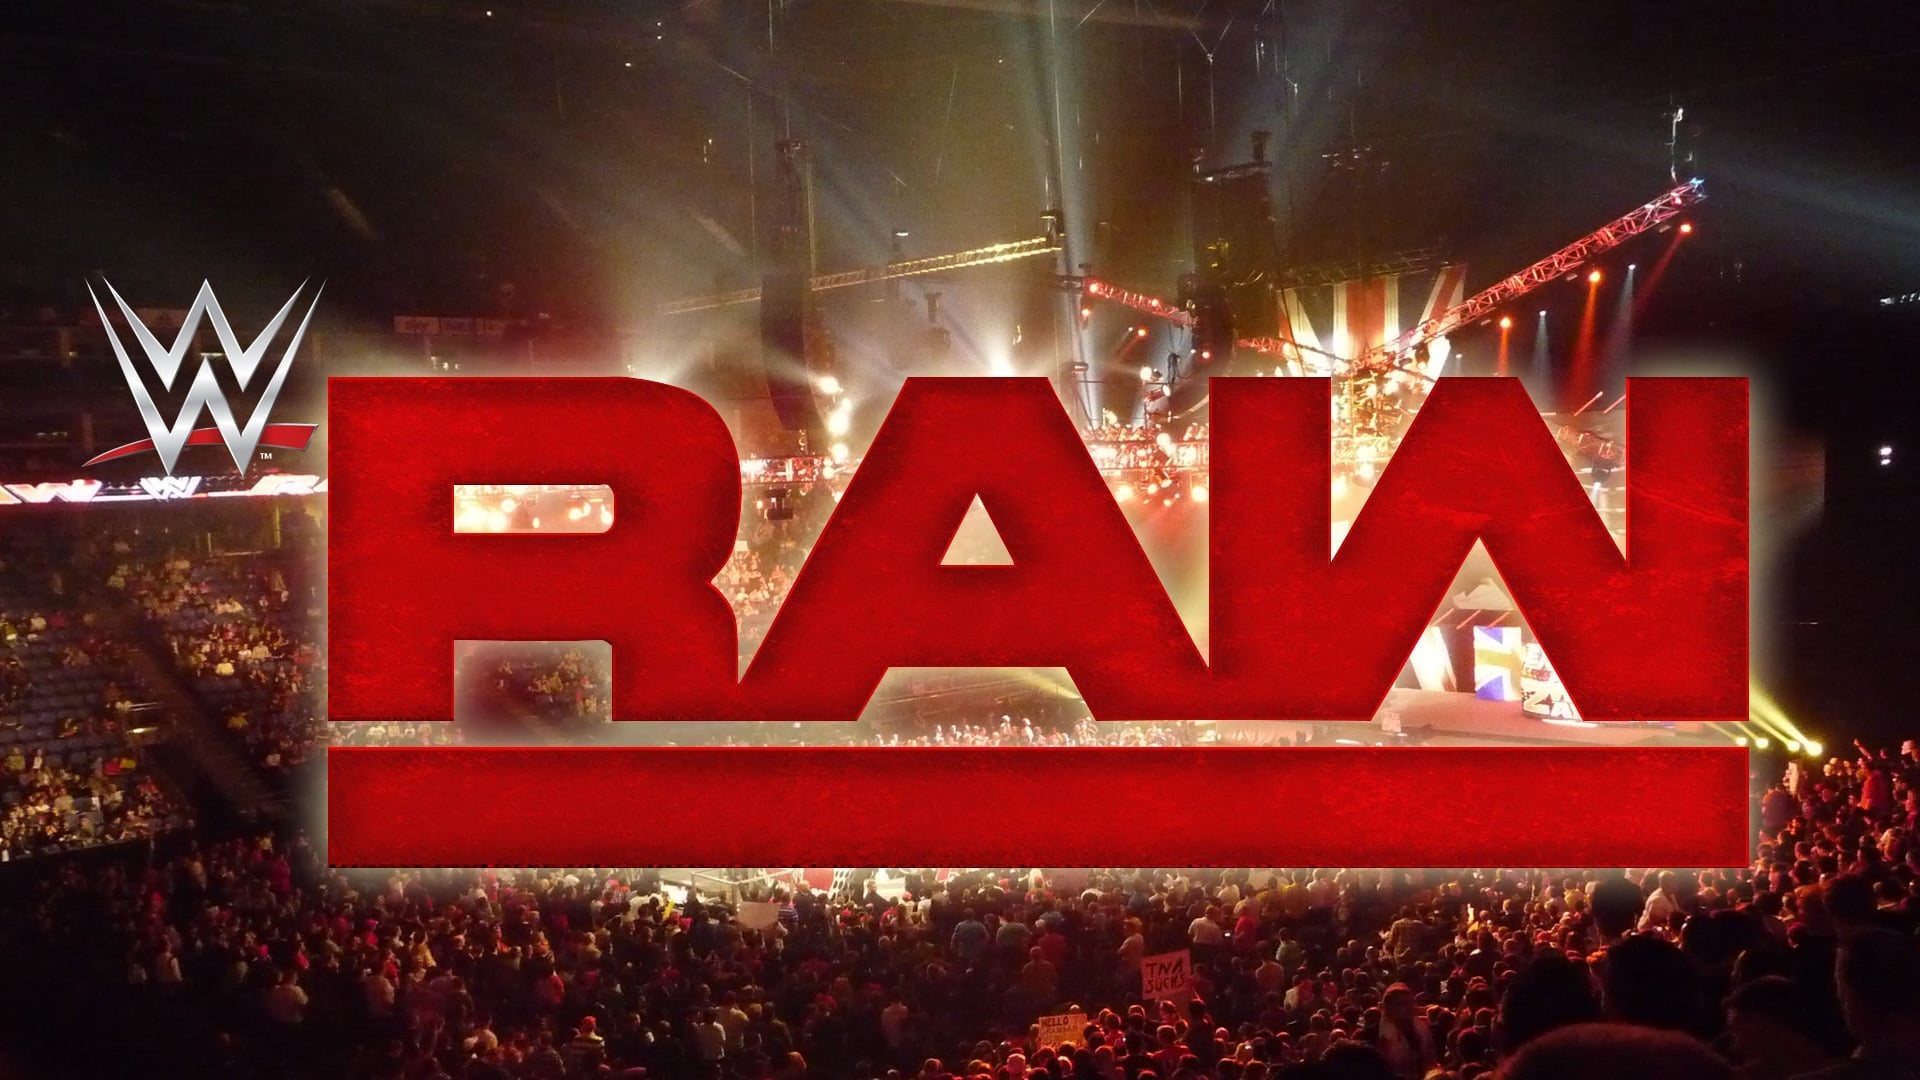 WWE Raw - Season 9 Episode 6 : RAW is WAR 402